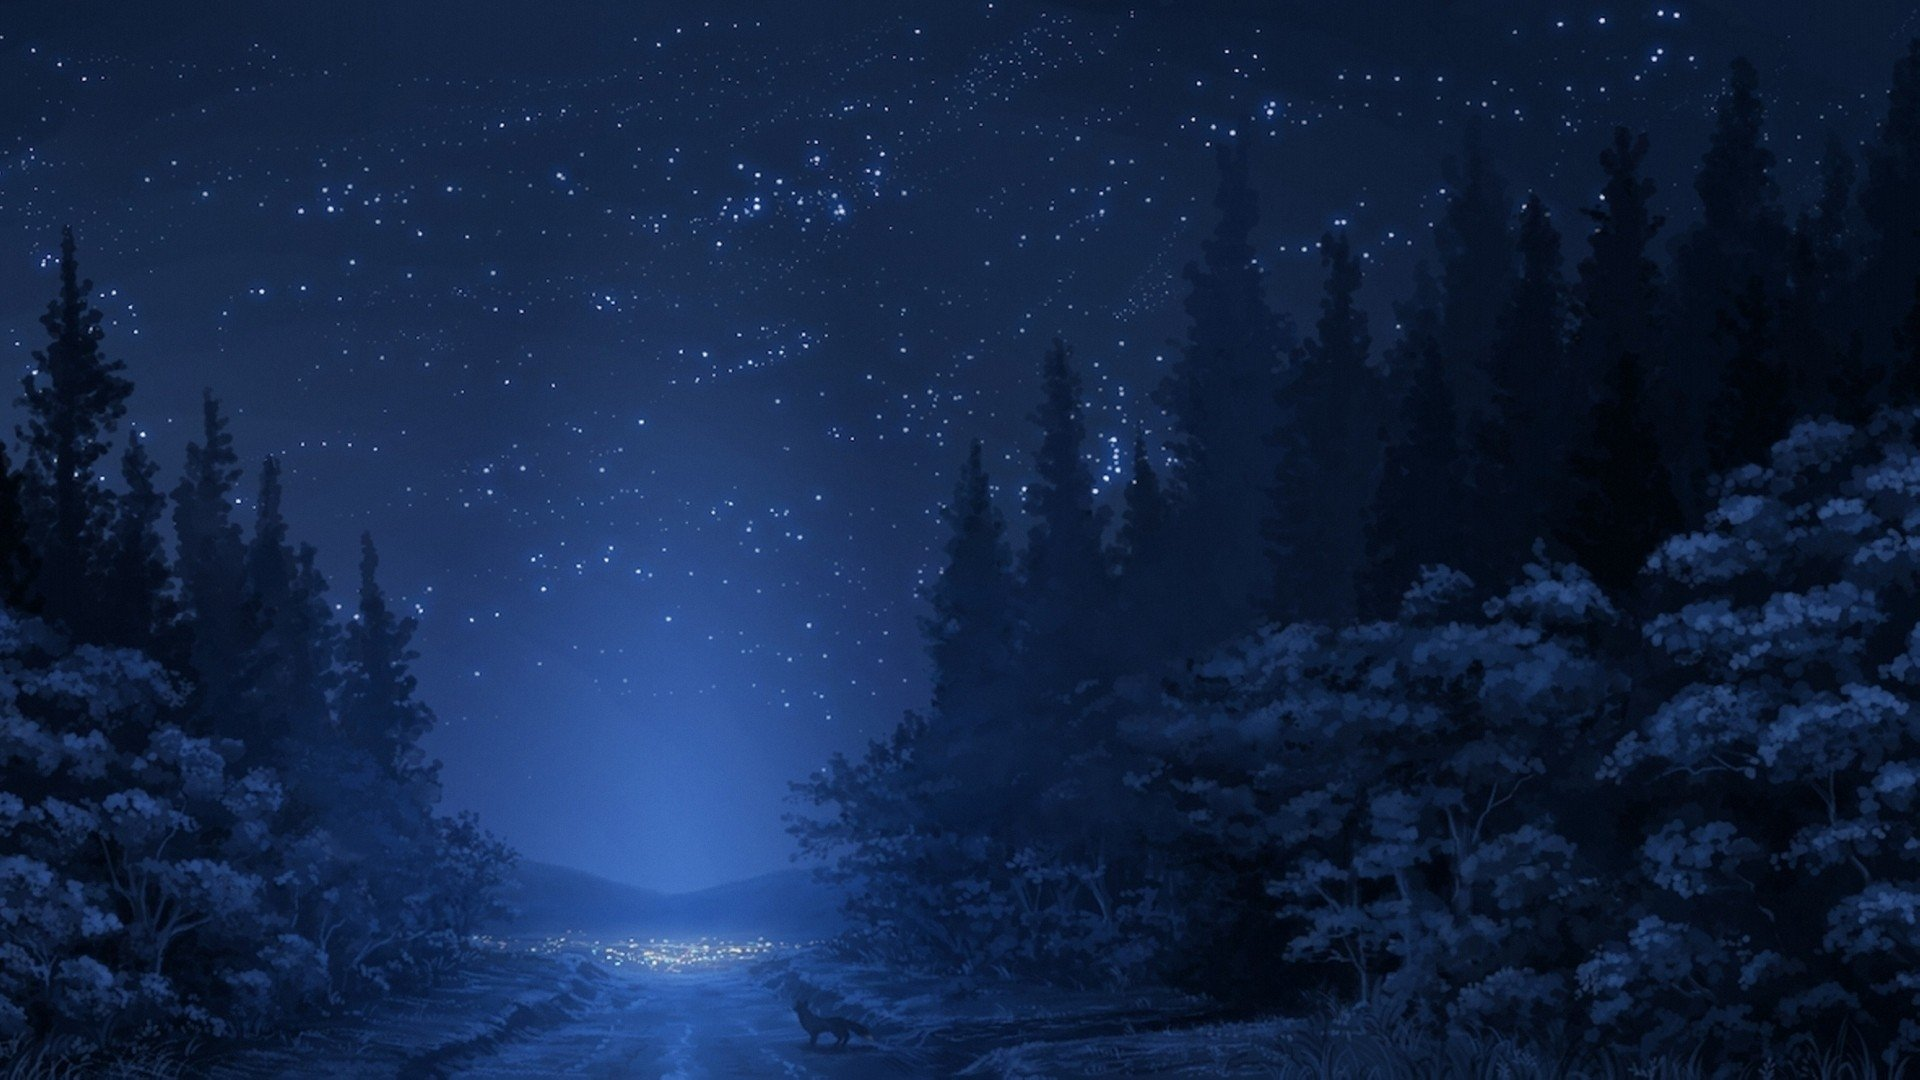 Winter night sky Mac Wallpaper Download Mac Wallpapers Download 1920x1080